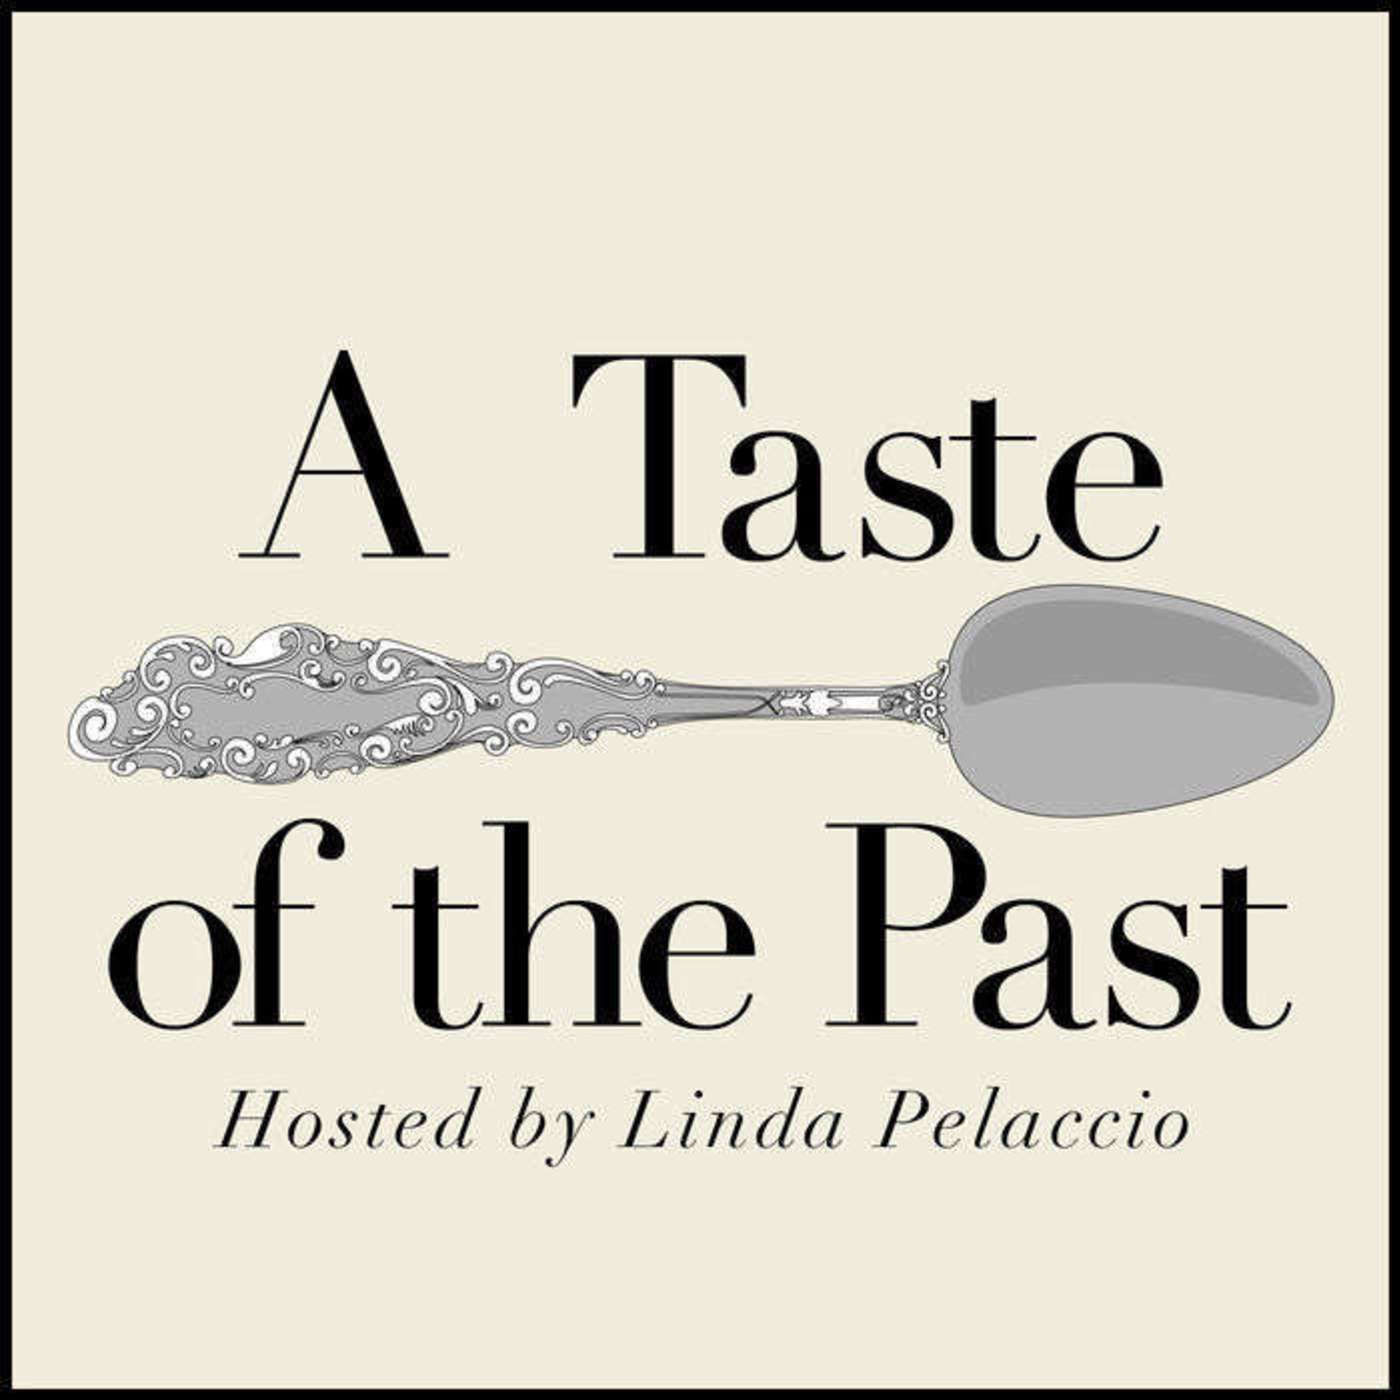 Episode 78: History of American Wine